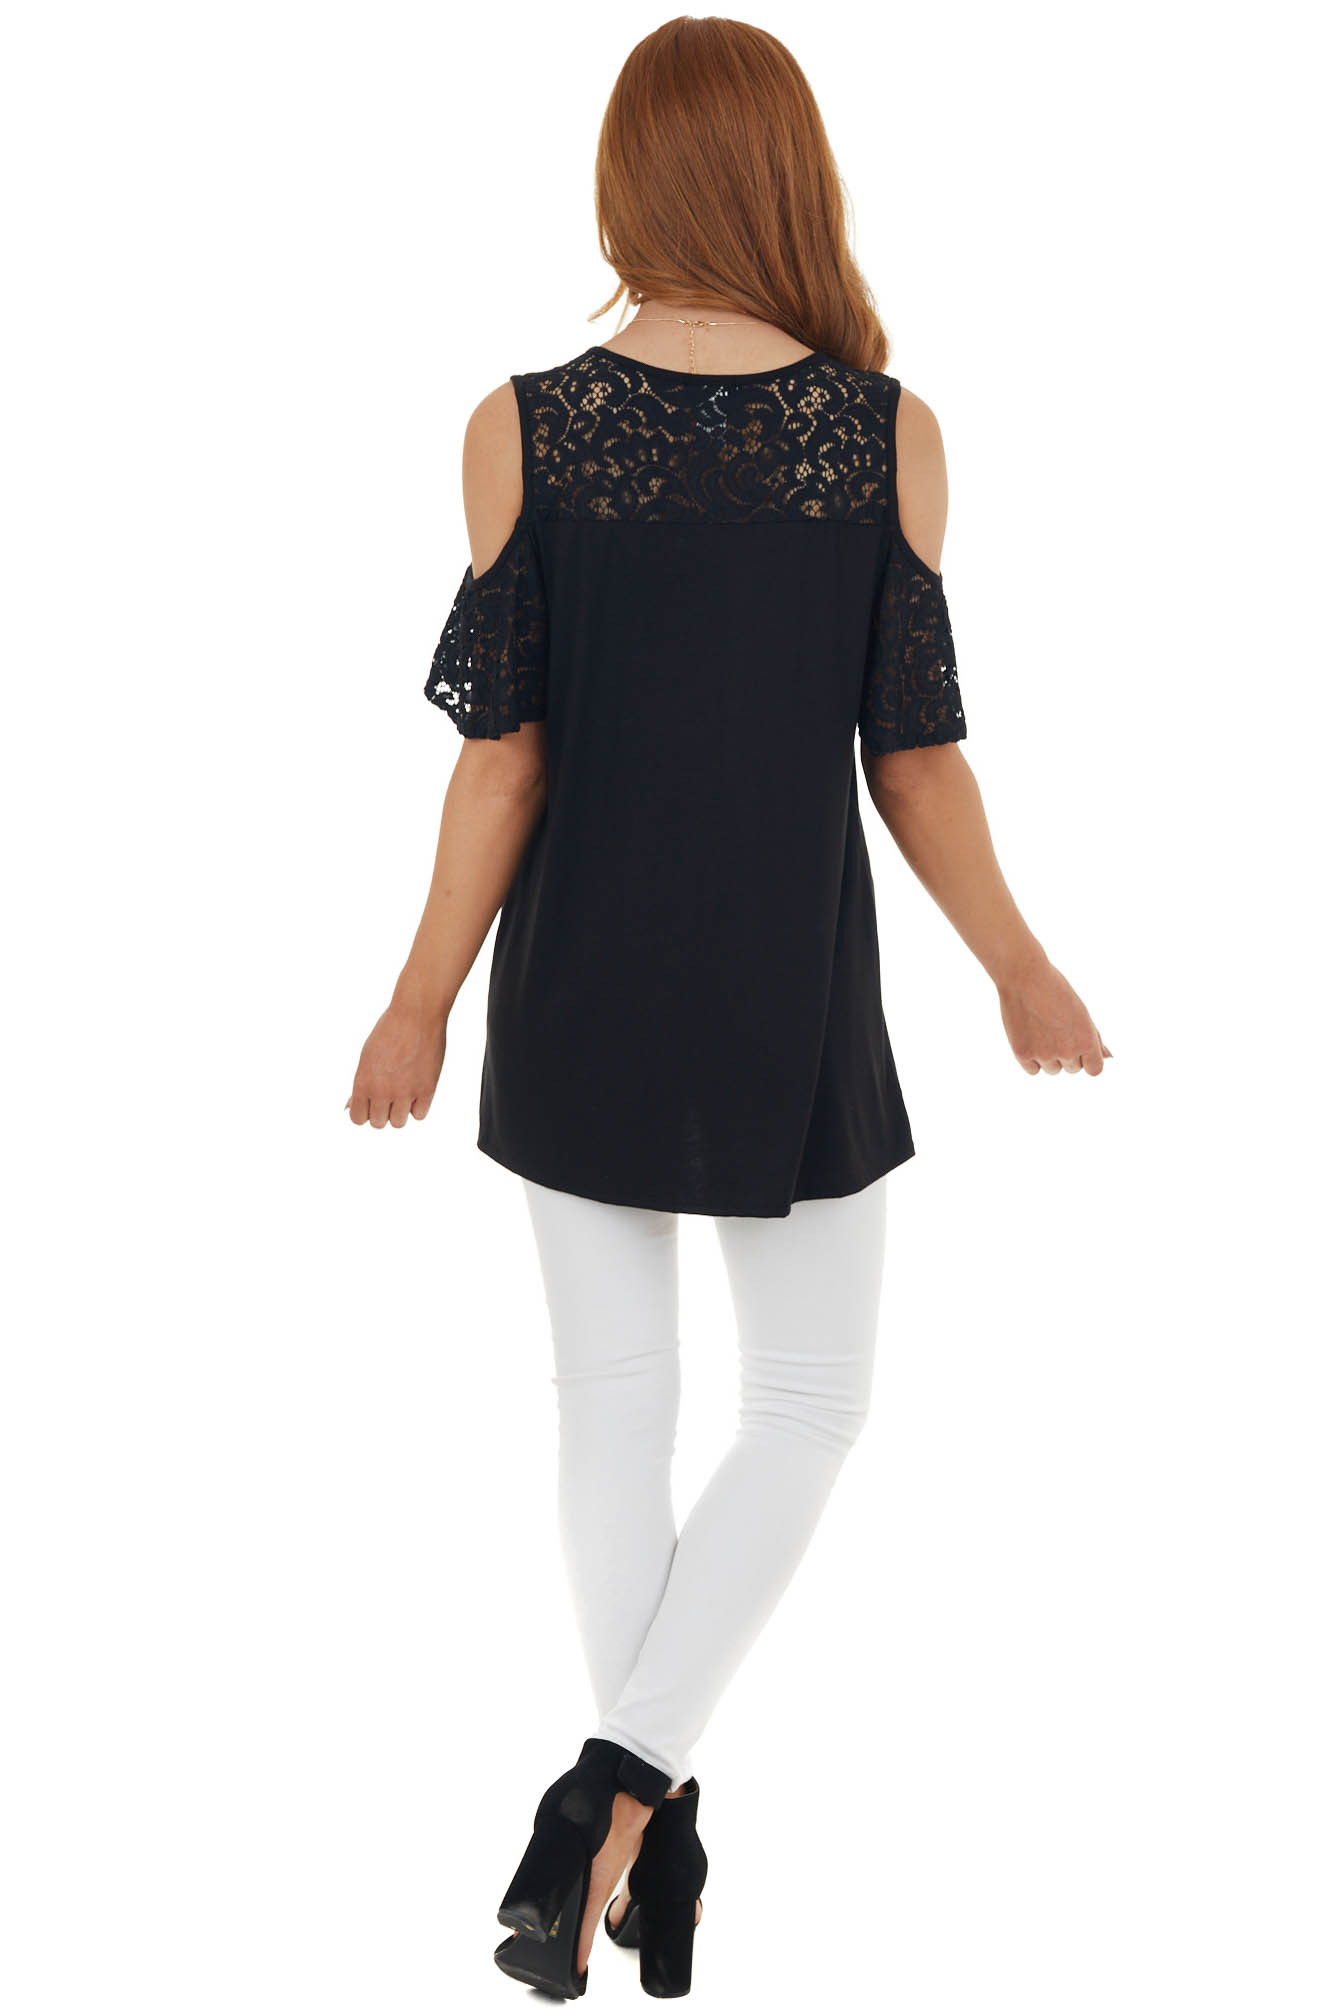 Black Cold Shoulder Short Sleeve Knit Top with Lace Detail